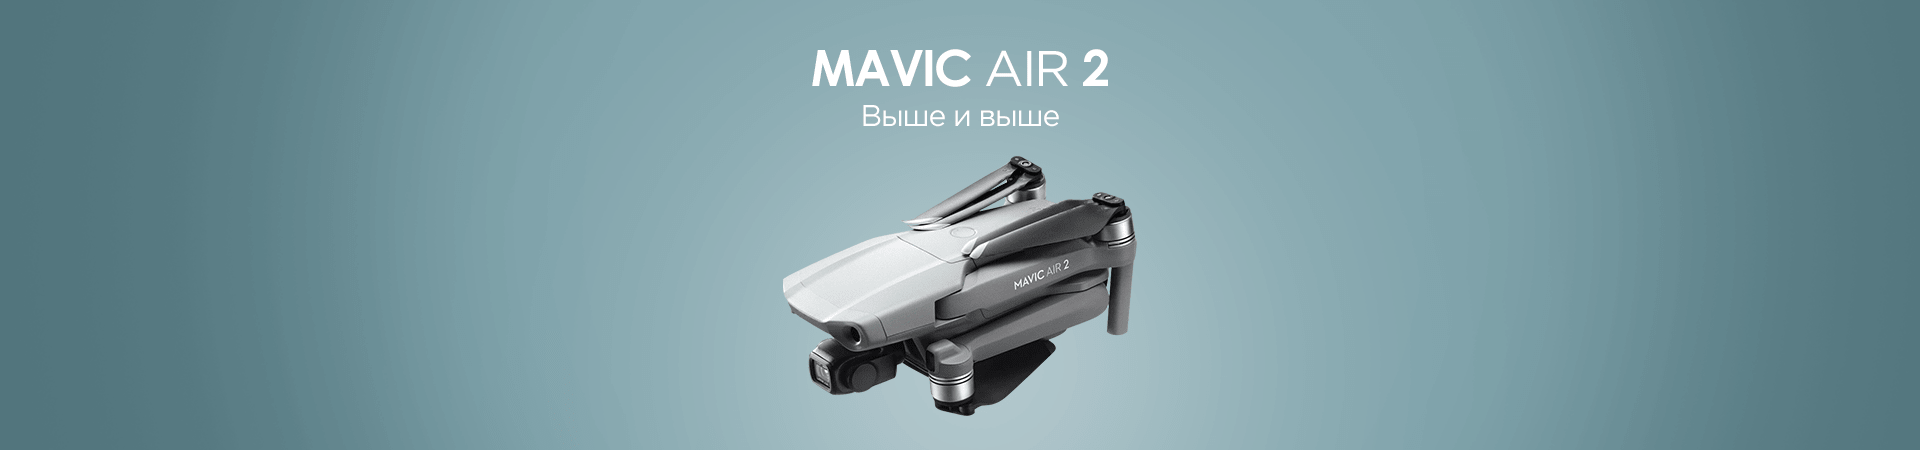 Mavic 2 air